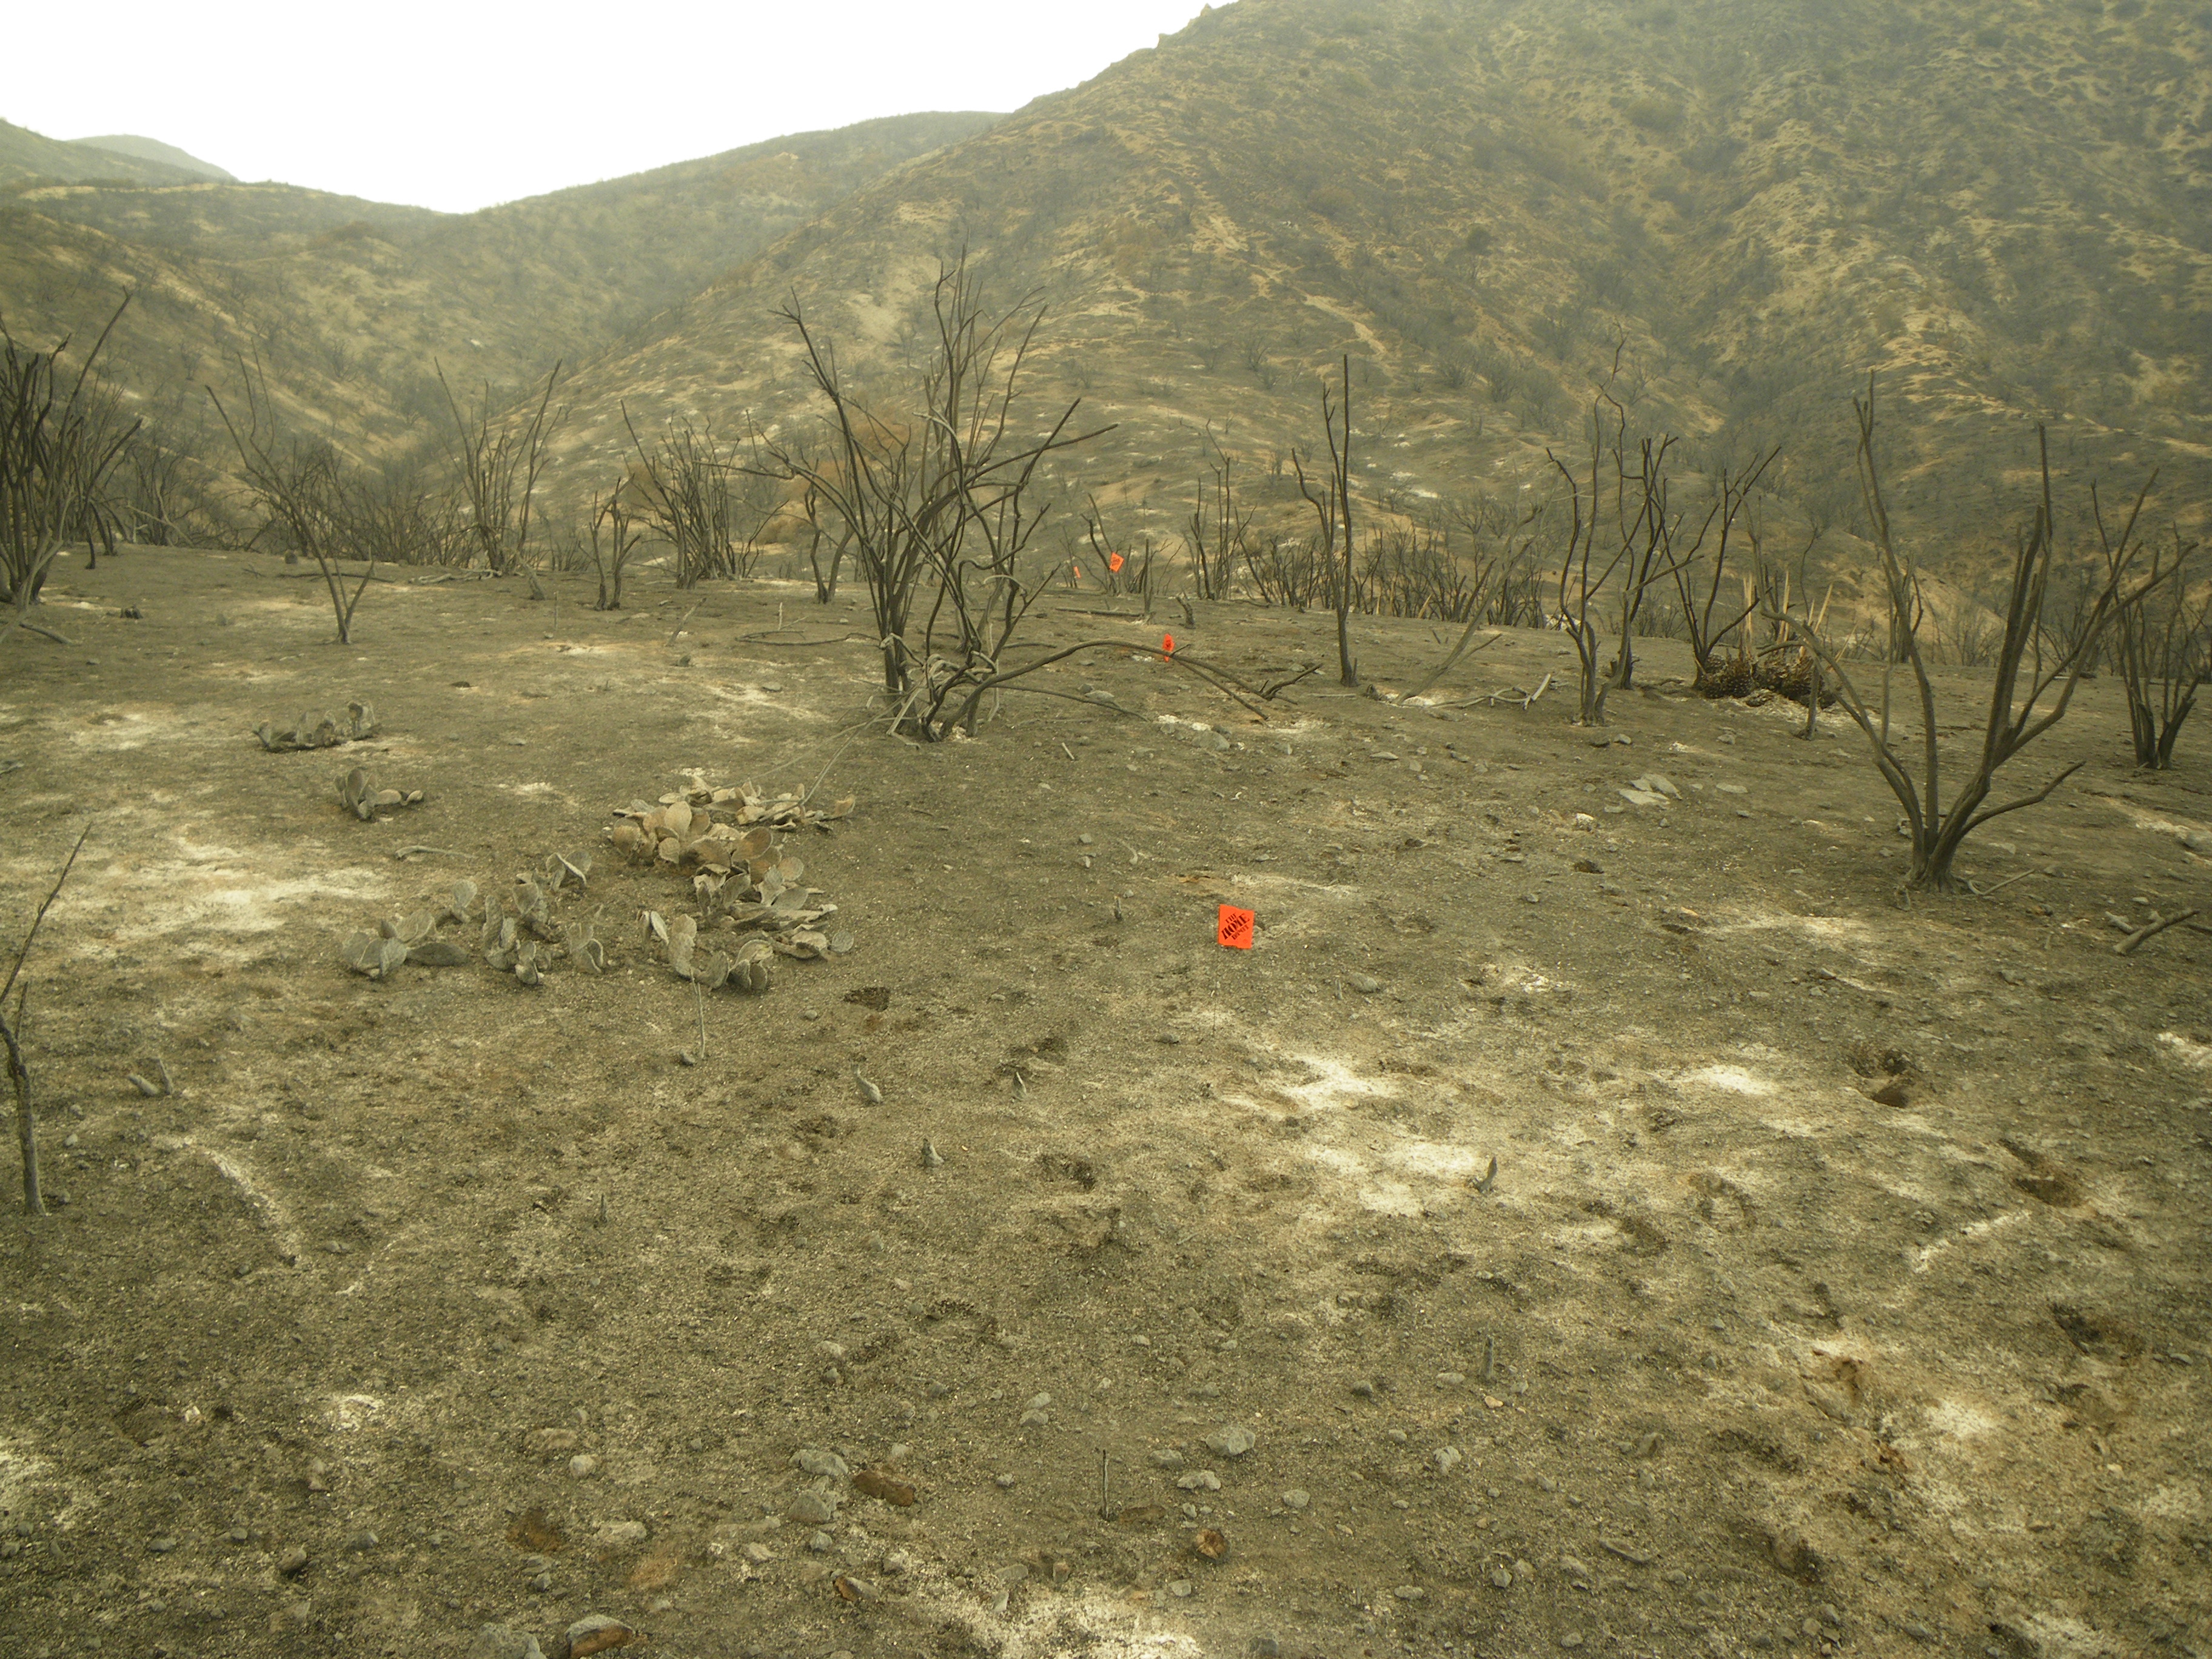 Burned hillside from recent fire in chaparral in southern California.  Even cactus can be seen burned. The lack of organic materials changed soil moisture and impacts amphibians.